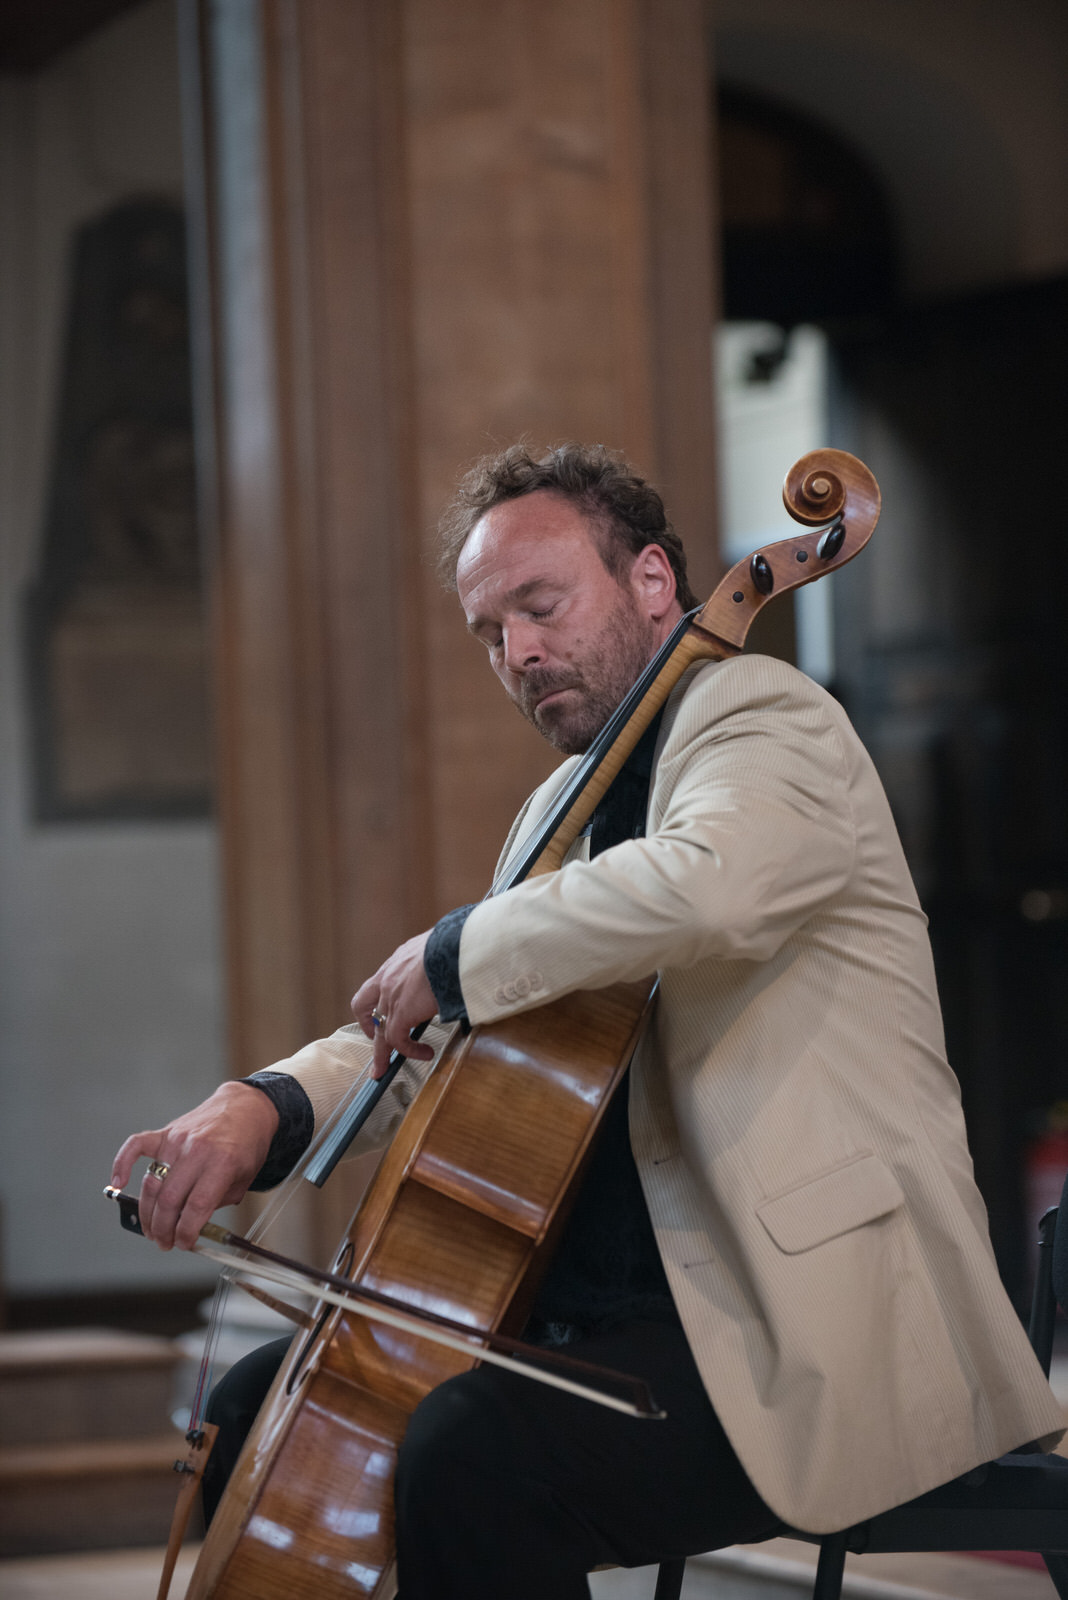 Cellist Michael Fitzpatrick treats the audience with his beautiful and reflective pieces